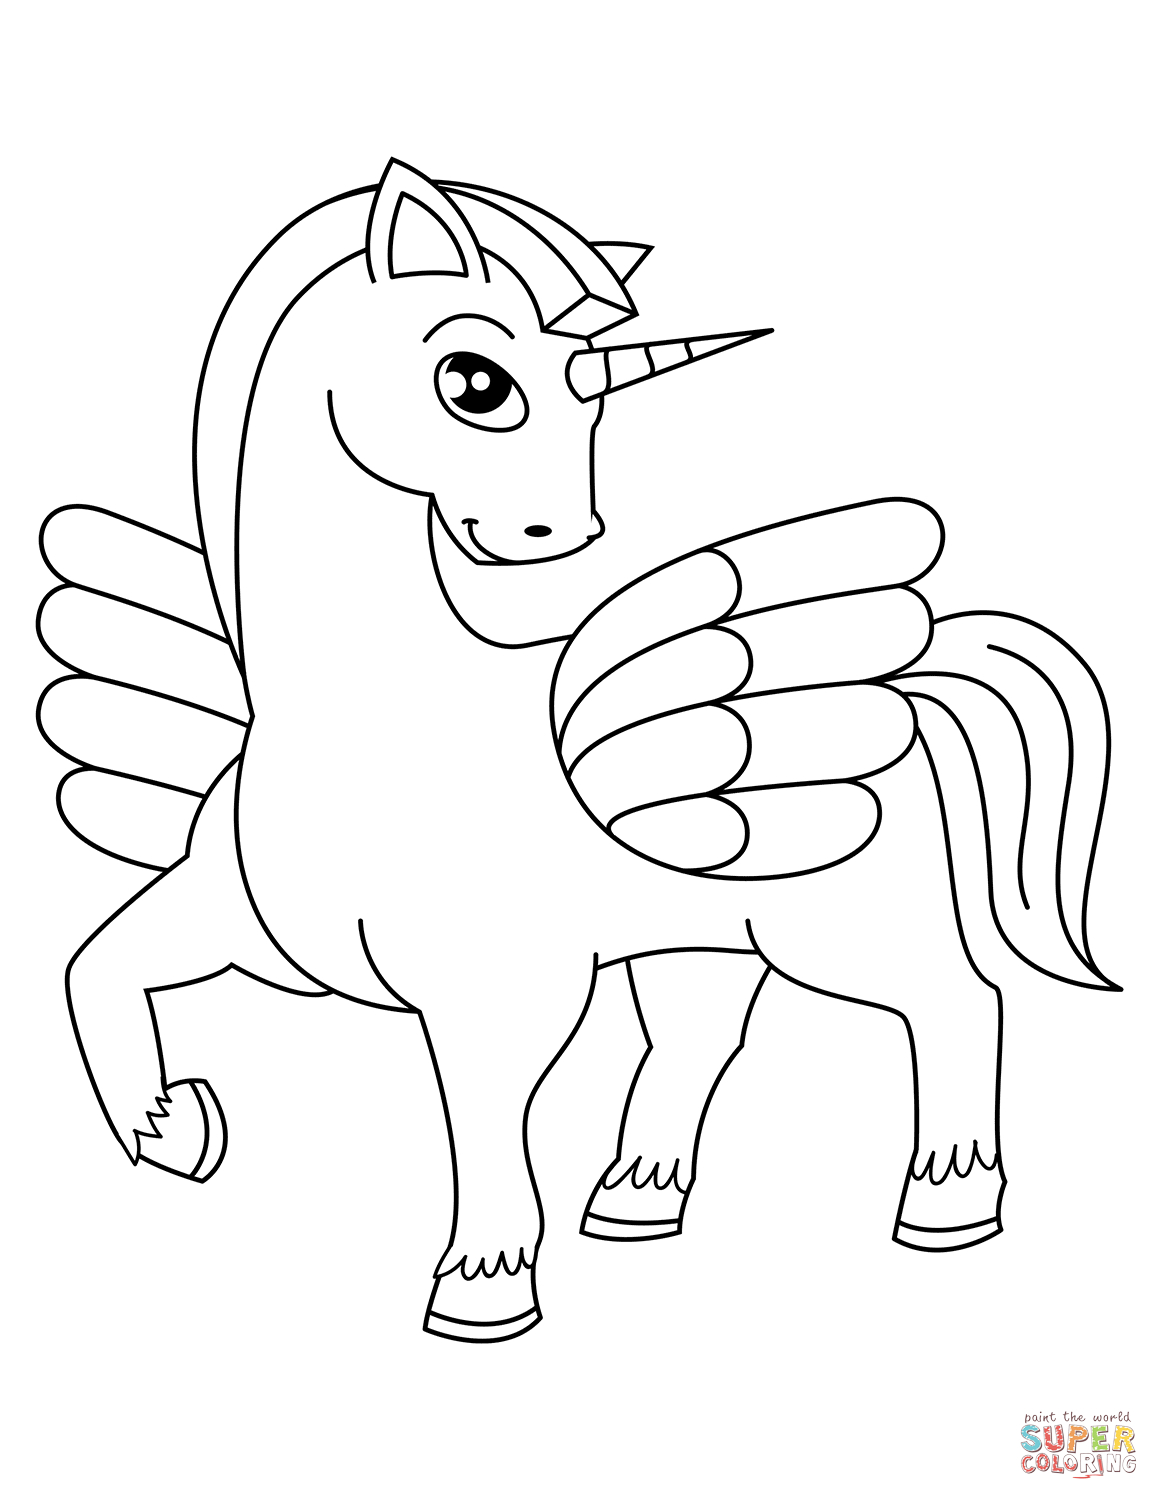 Cute Unicorn Coloring Pages Unicorn Coloring Pages Free Coloring Pages